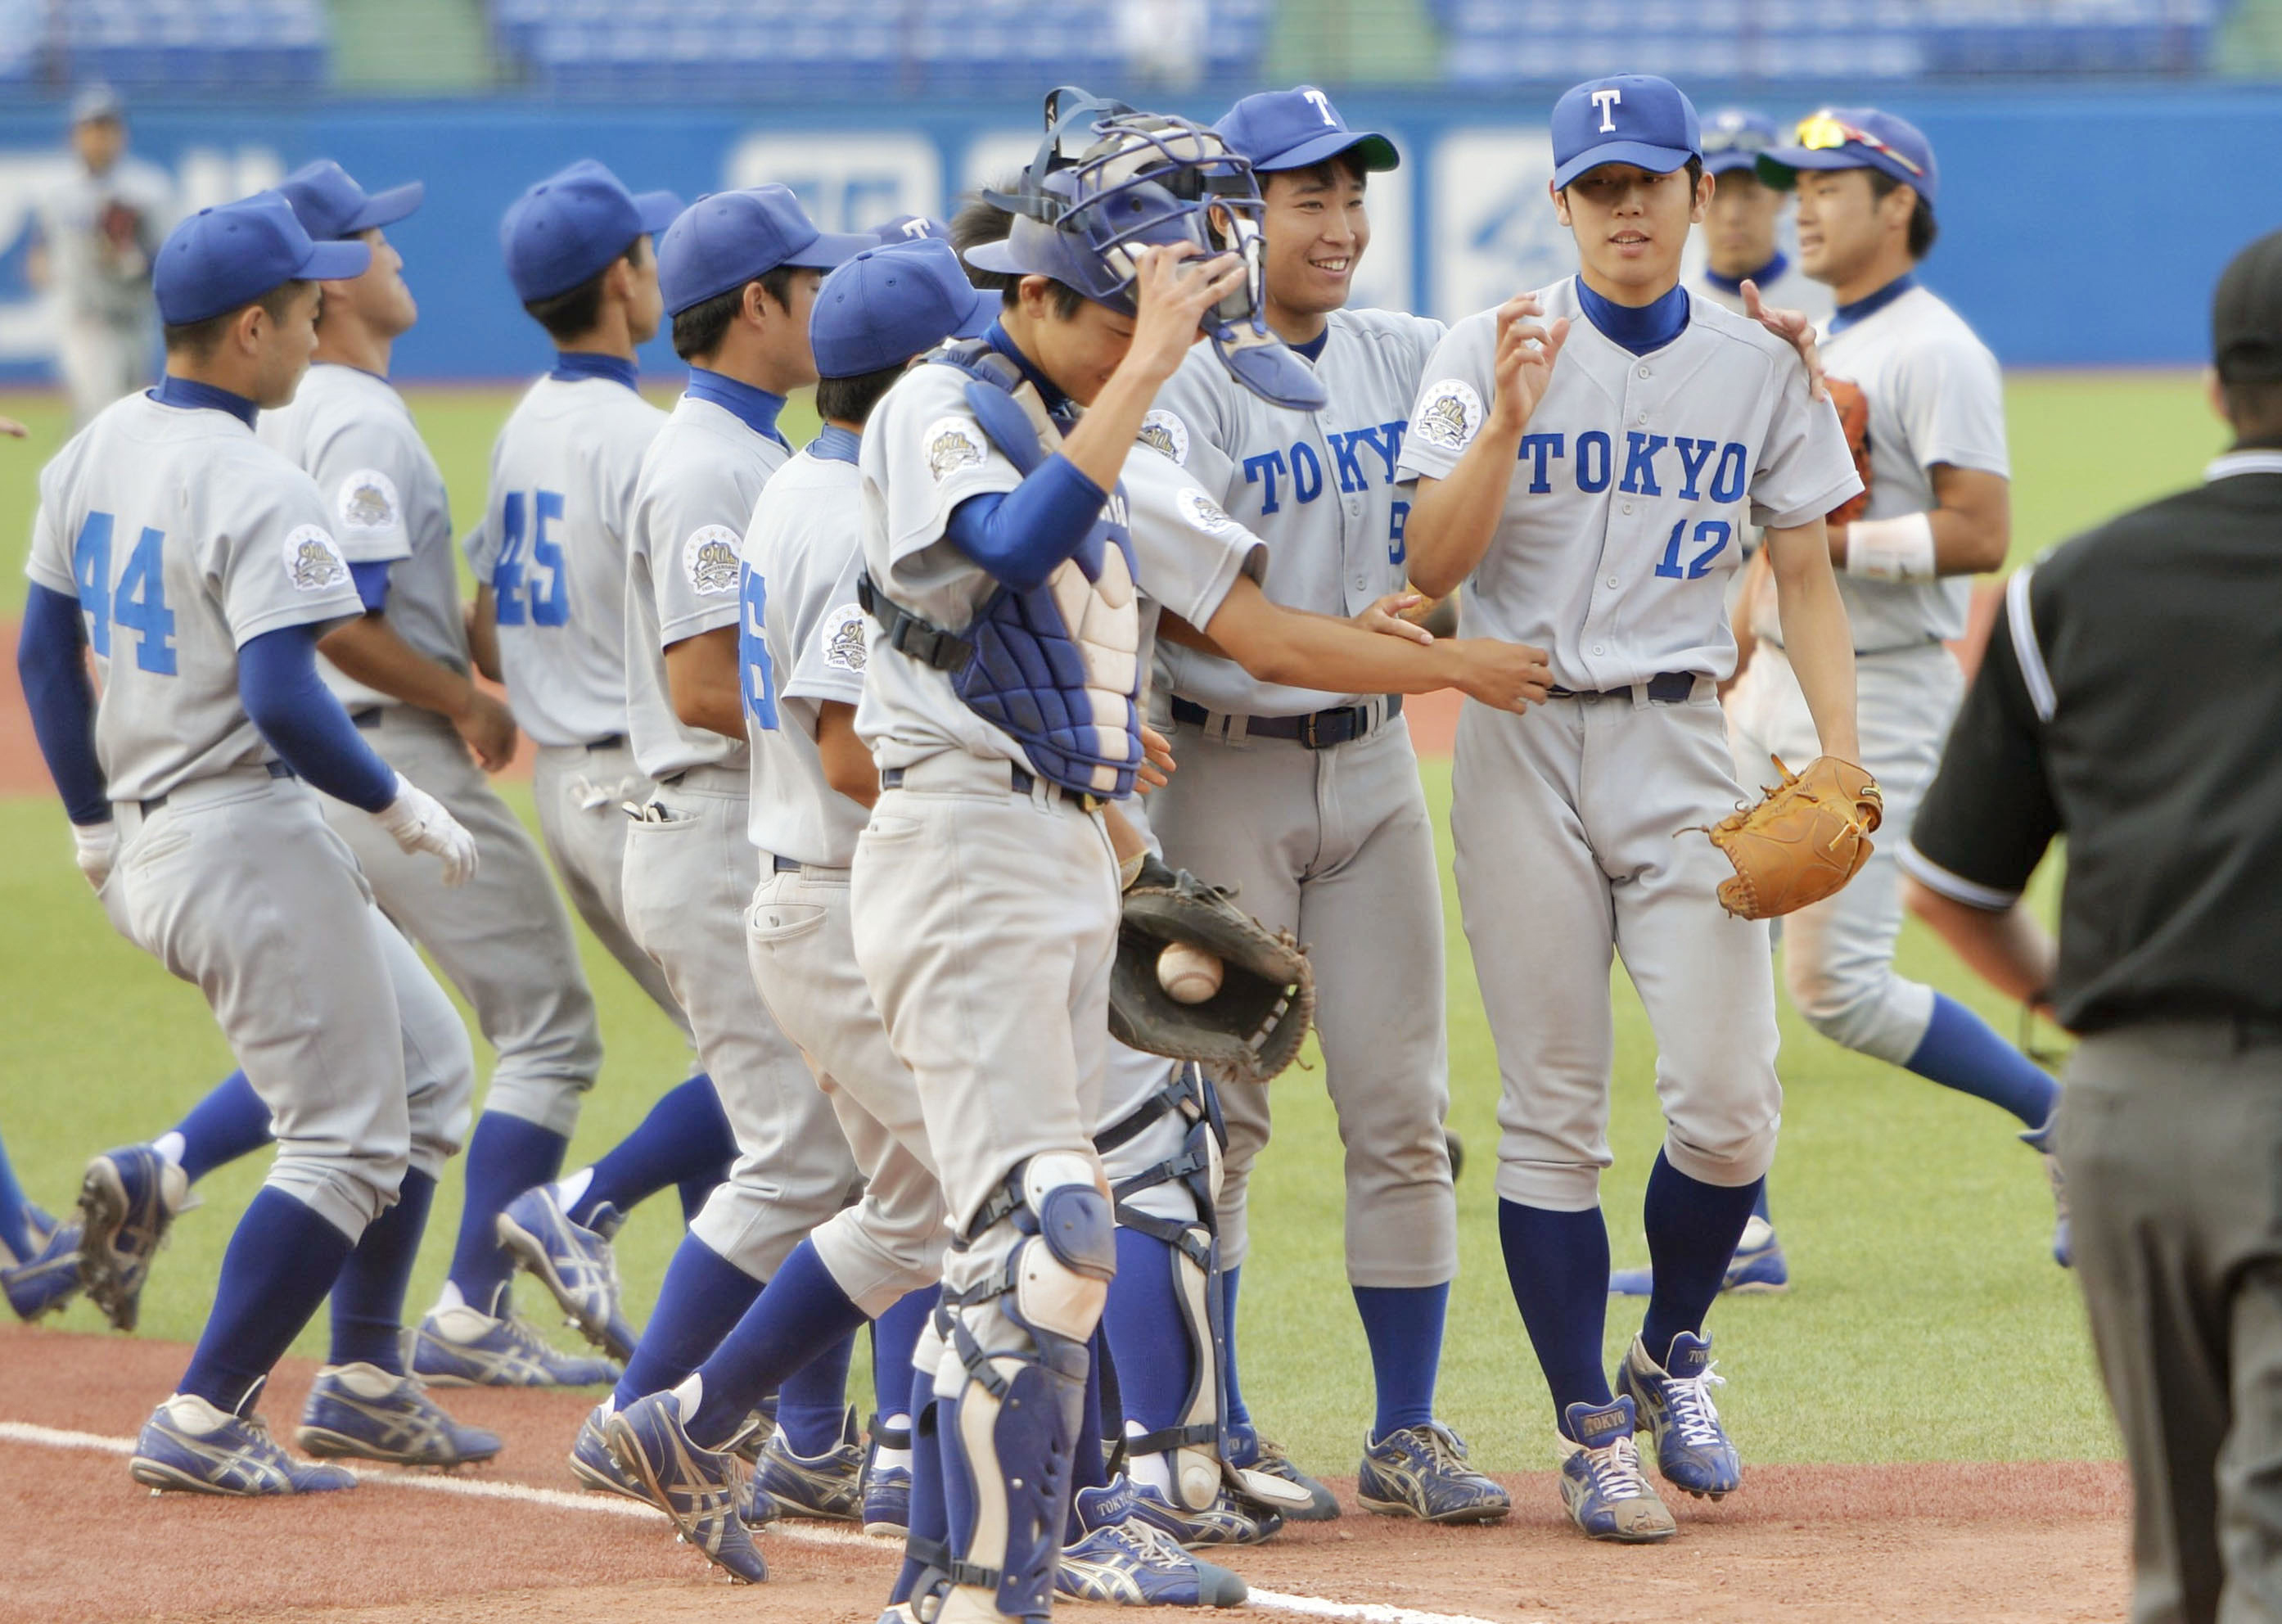 Pitcher Akihiro Shibata (12), right, of the University of Tokyo is congratulated by his teammates after putting an end to a record 94-game losing streak, winning for the first time in five years, during the Tokyo Big 6 Baseball League match against Hosei